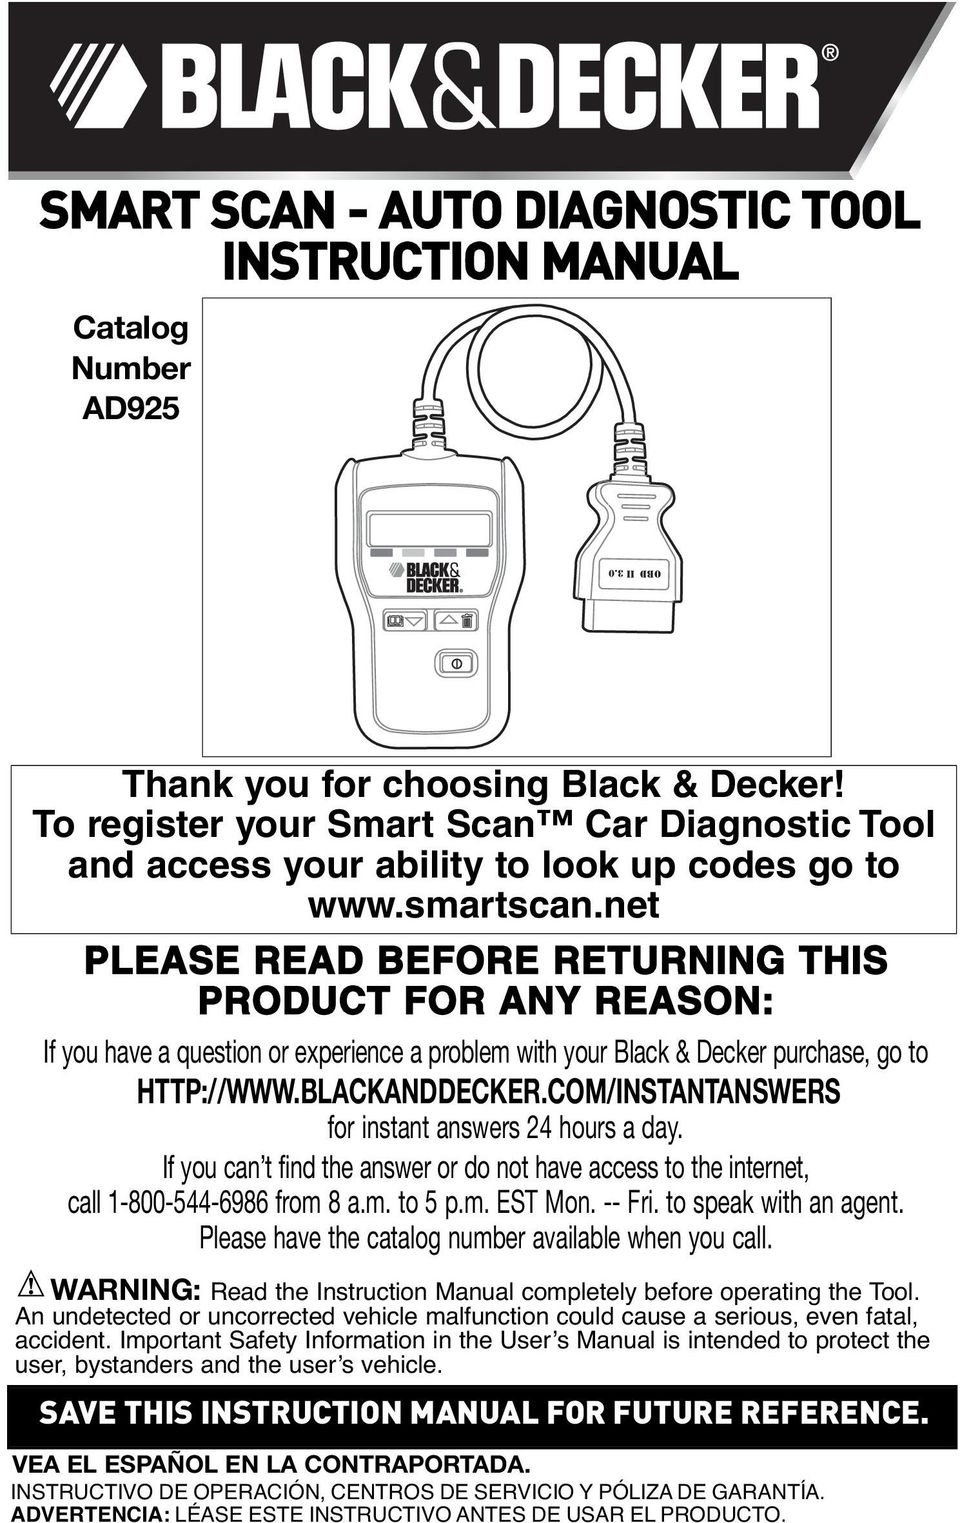 net PLEASE READ BEFORE RETURNNG THS PRODUCT FOR ANY REASON: f you have a question or experience a problem with your Black & Decker purchase, go to HTTP://WWW.BLACKANDDECKER.